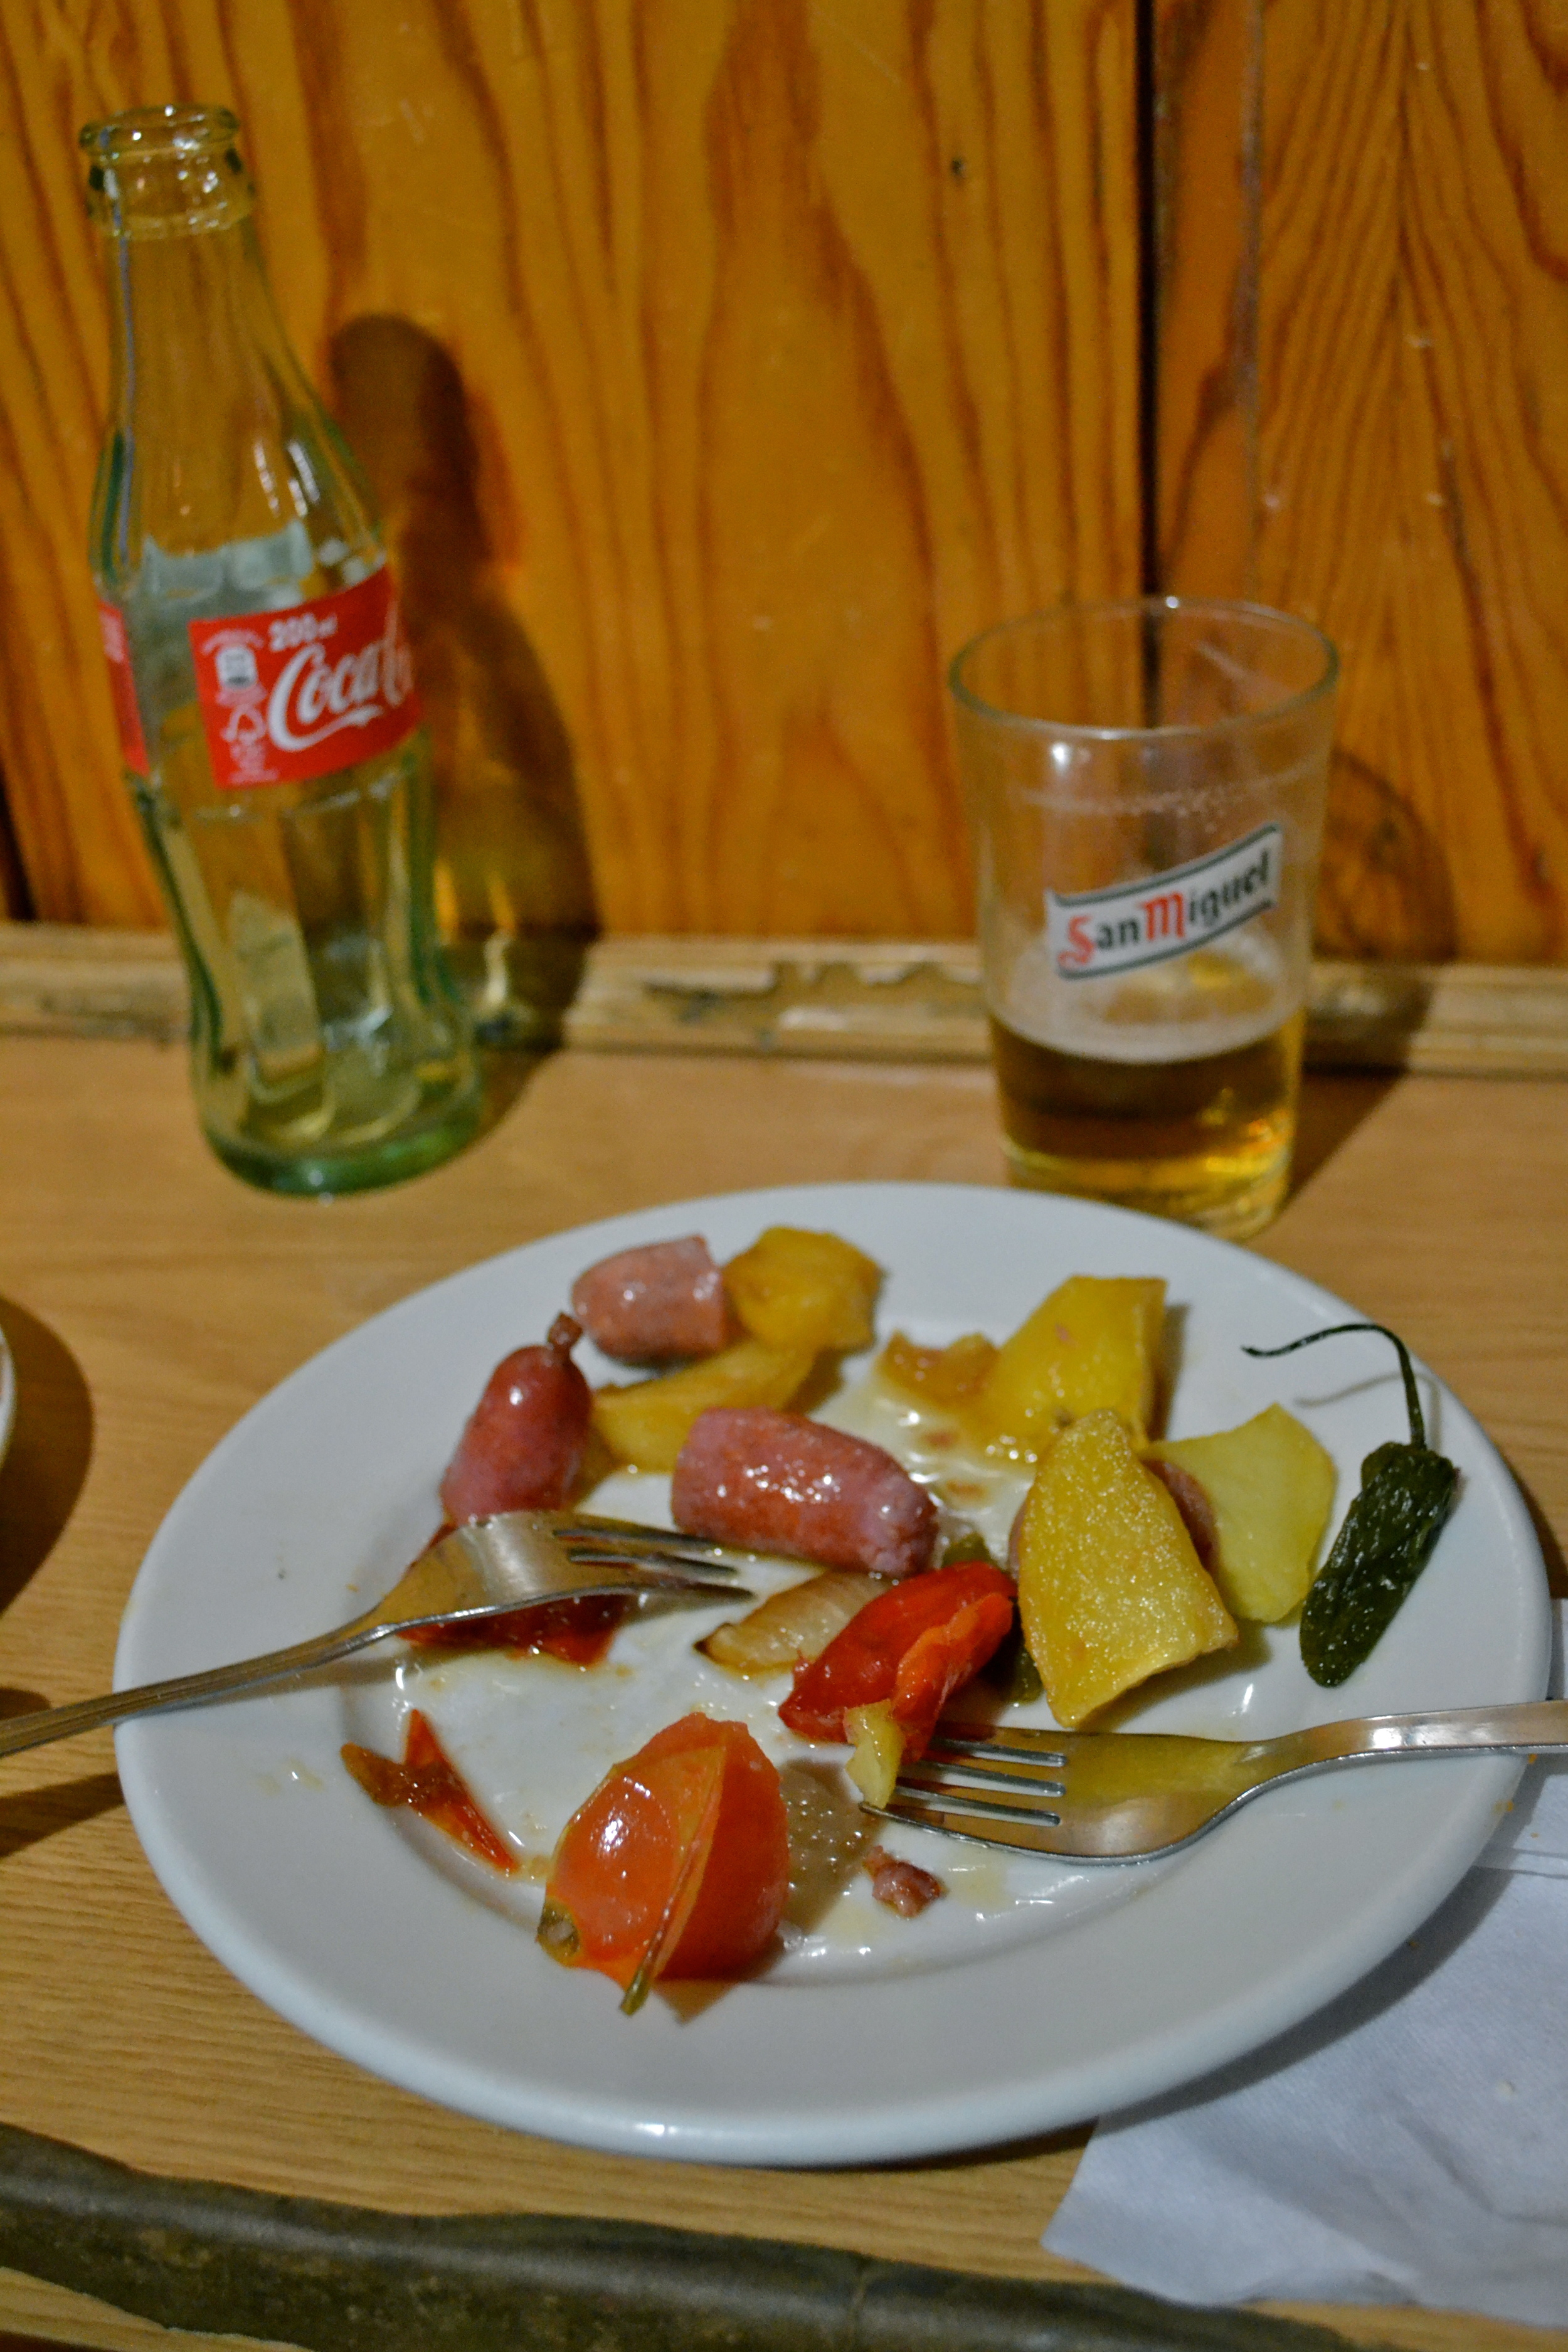 Typical tapas plate -- sausage and potatoes